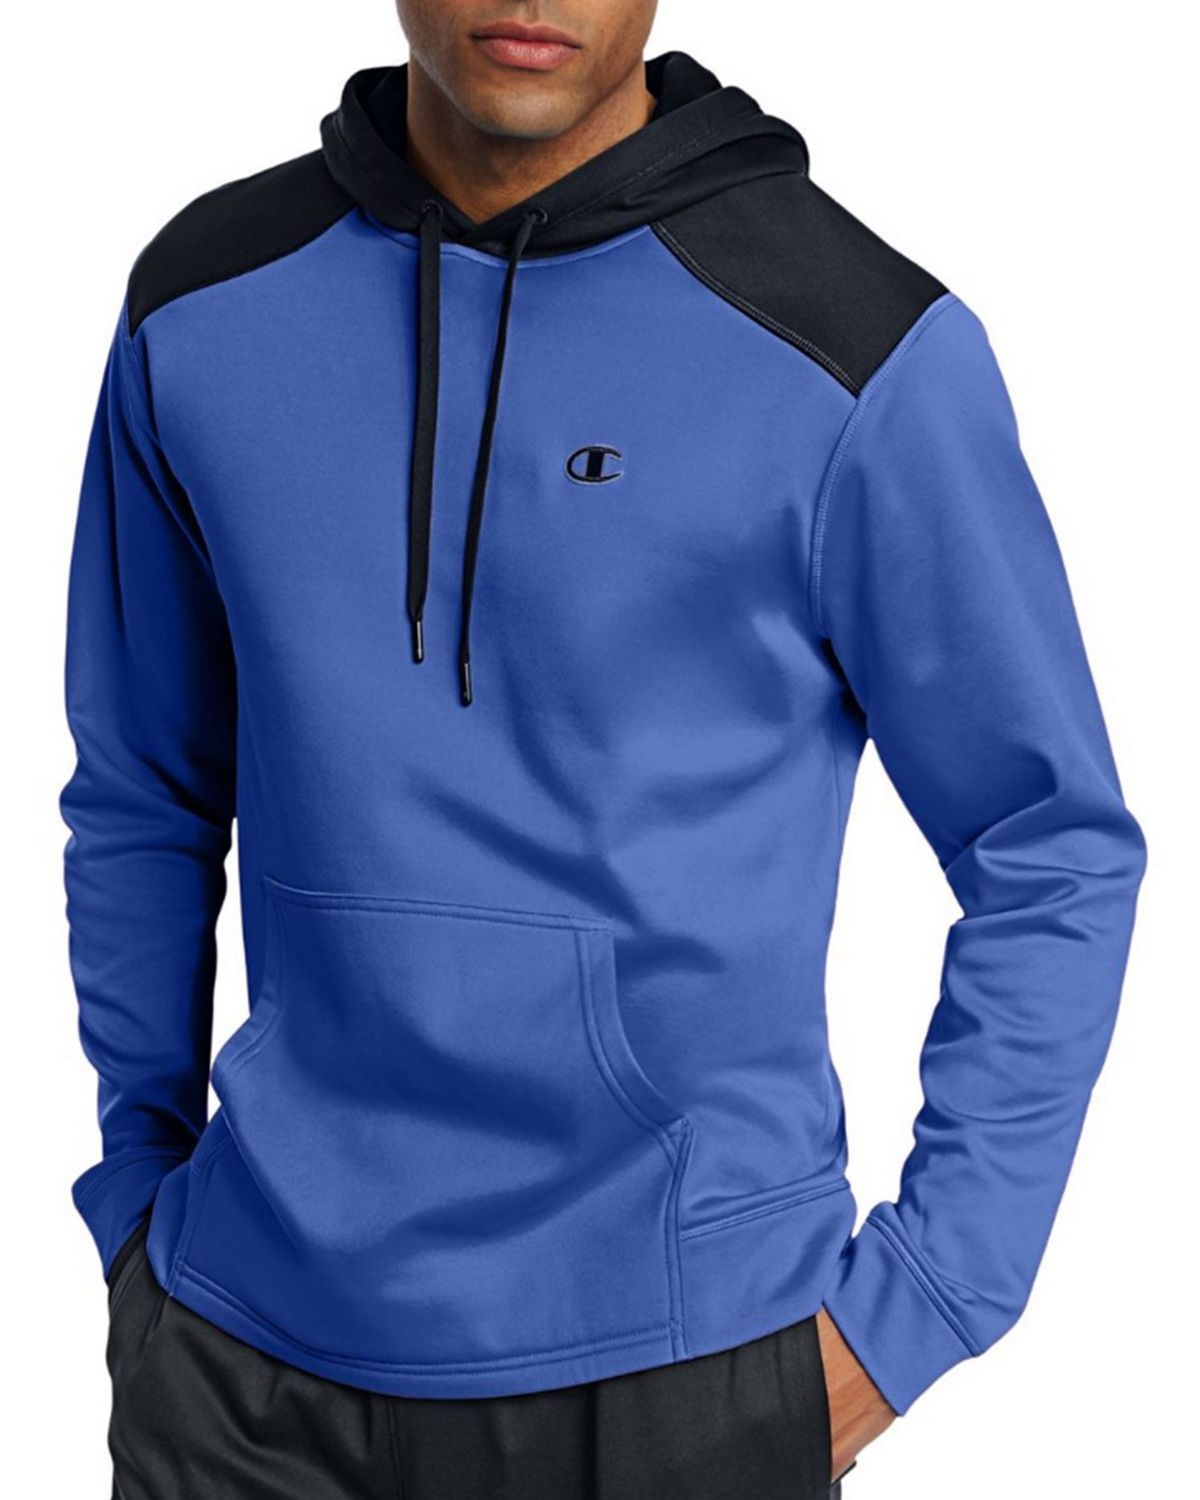 Champion S0875 Tech Fleece Pullover Hoodie - Surf The Web/Navy - XL S0875